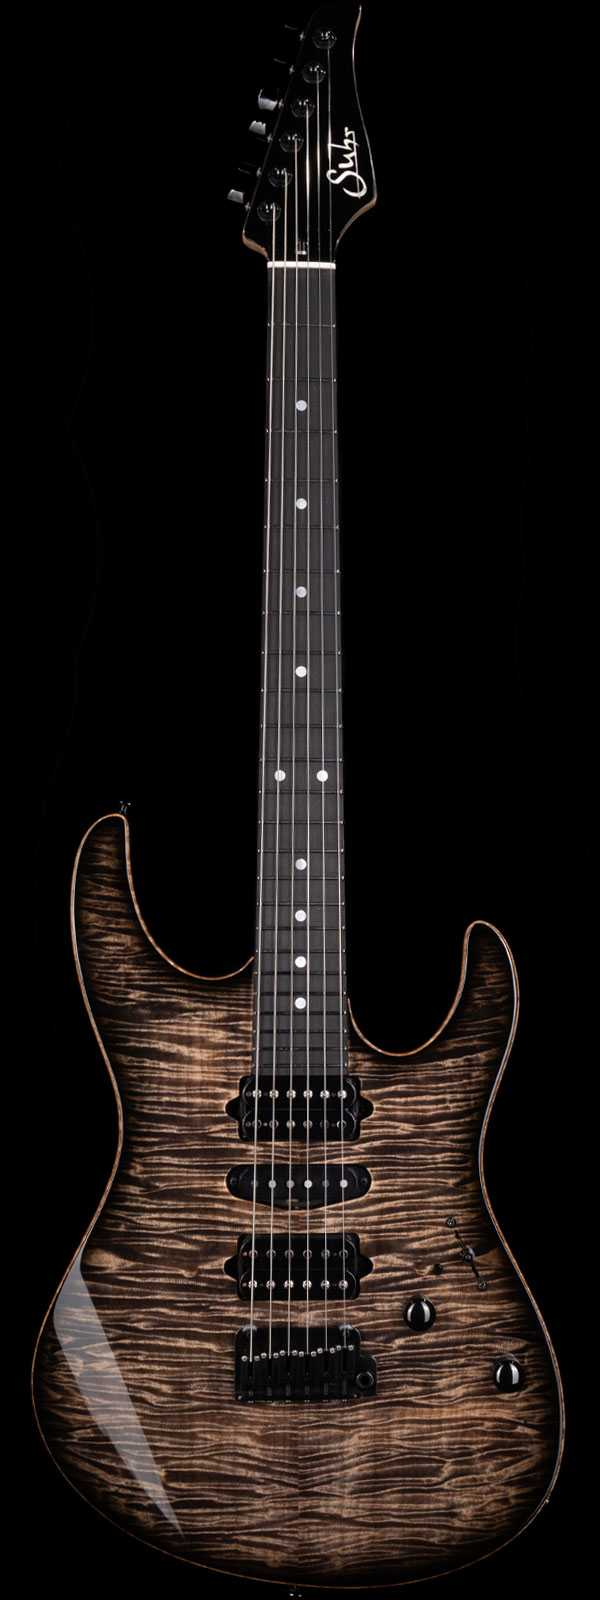 Suhr Custom Modern Flame Maple Top Ebony Board Trans Charcoal Burst